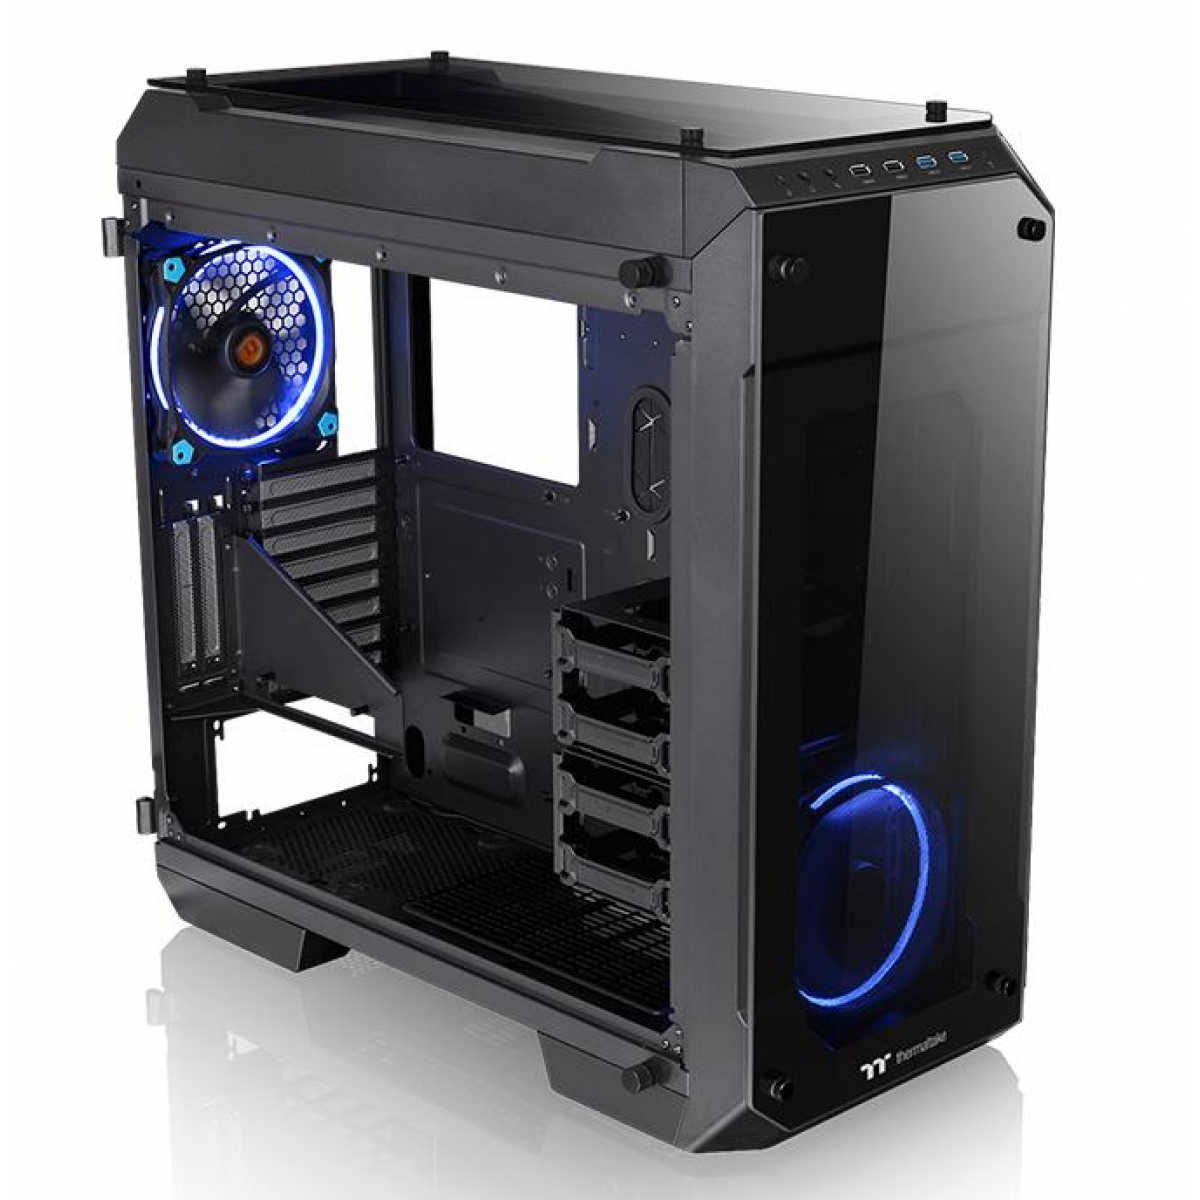 Gabinete Gamer Thermaltake View 71 RGB, Full Tower, Com 3 Fans, Vidro Temperado, Black, Sem Fonte, CA-1I7-00F1WN-01